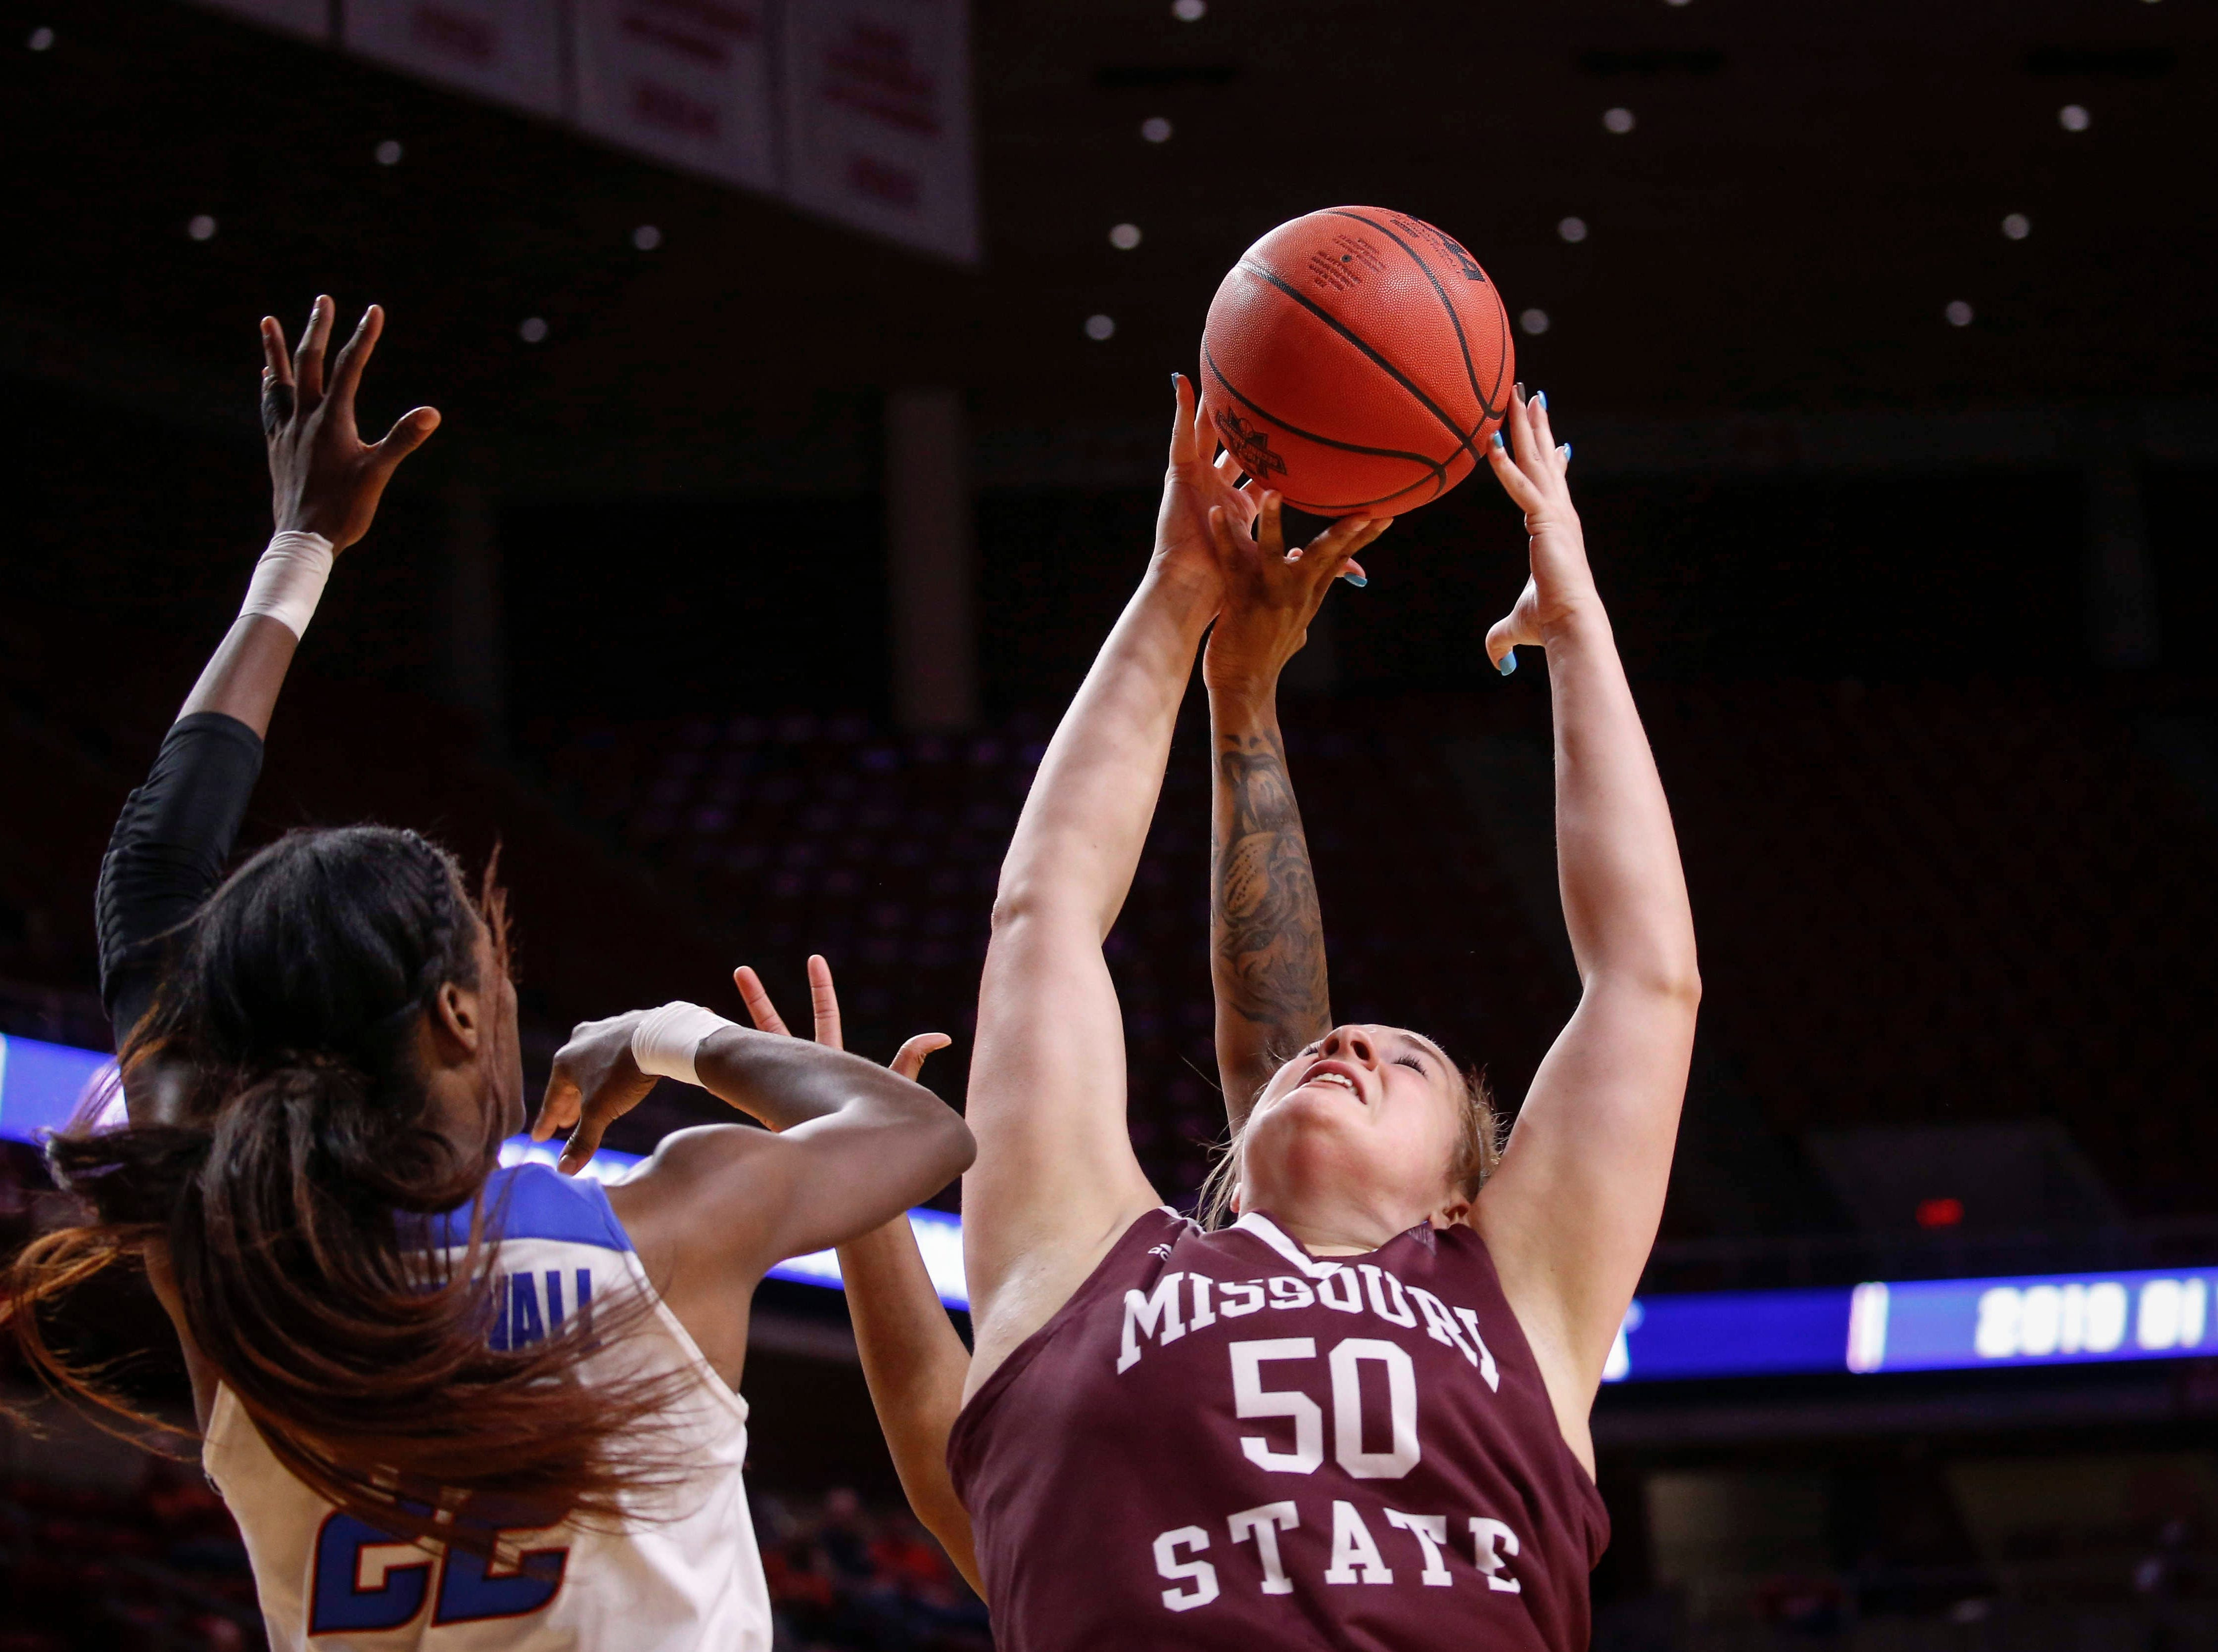 Missouri State sophomore Emily Gartner pulls down a rebound against DePaul on Saturday, March 23, 2019, at Hilton Coliseum in Ames.